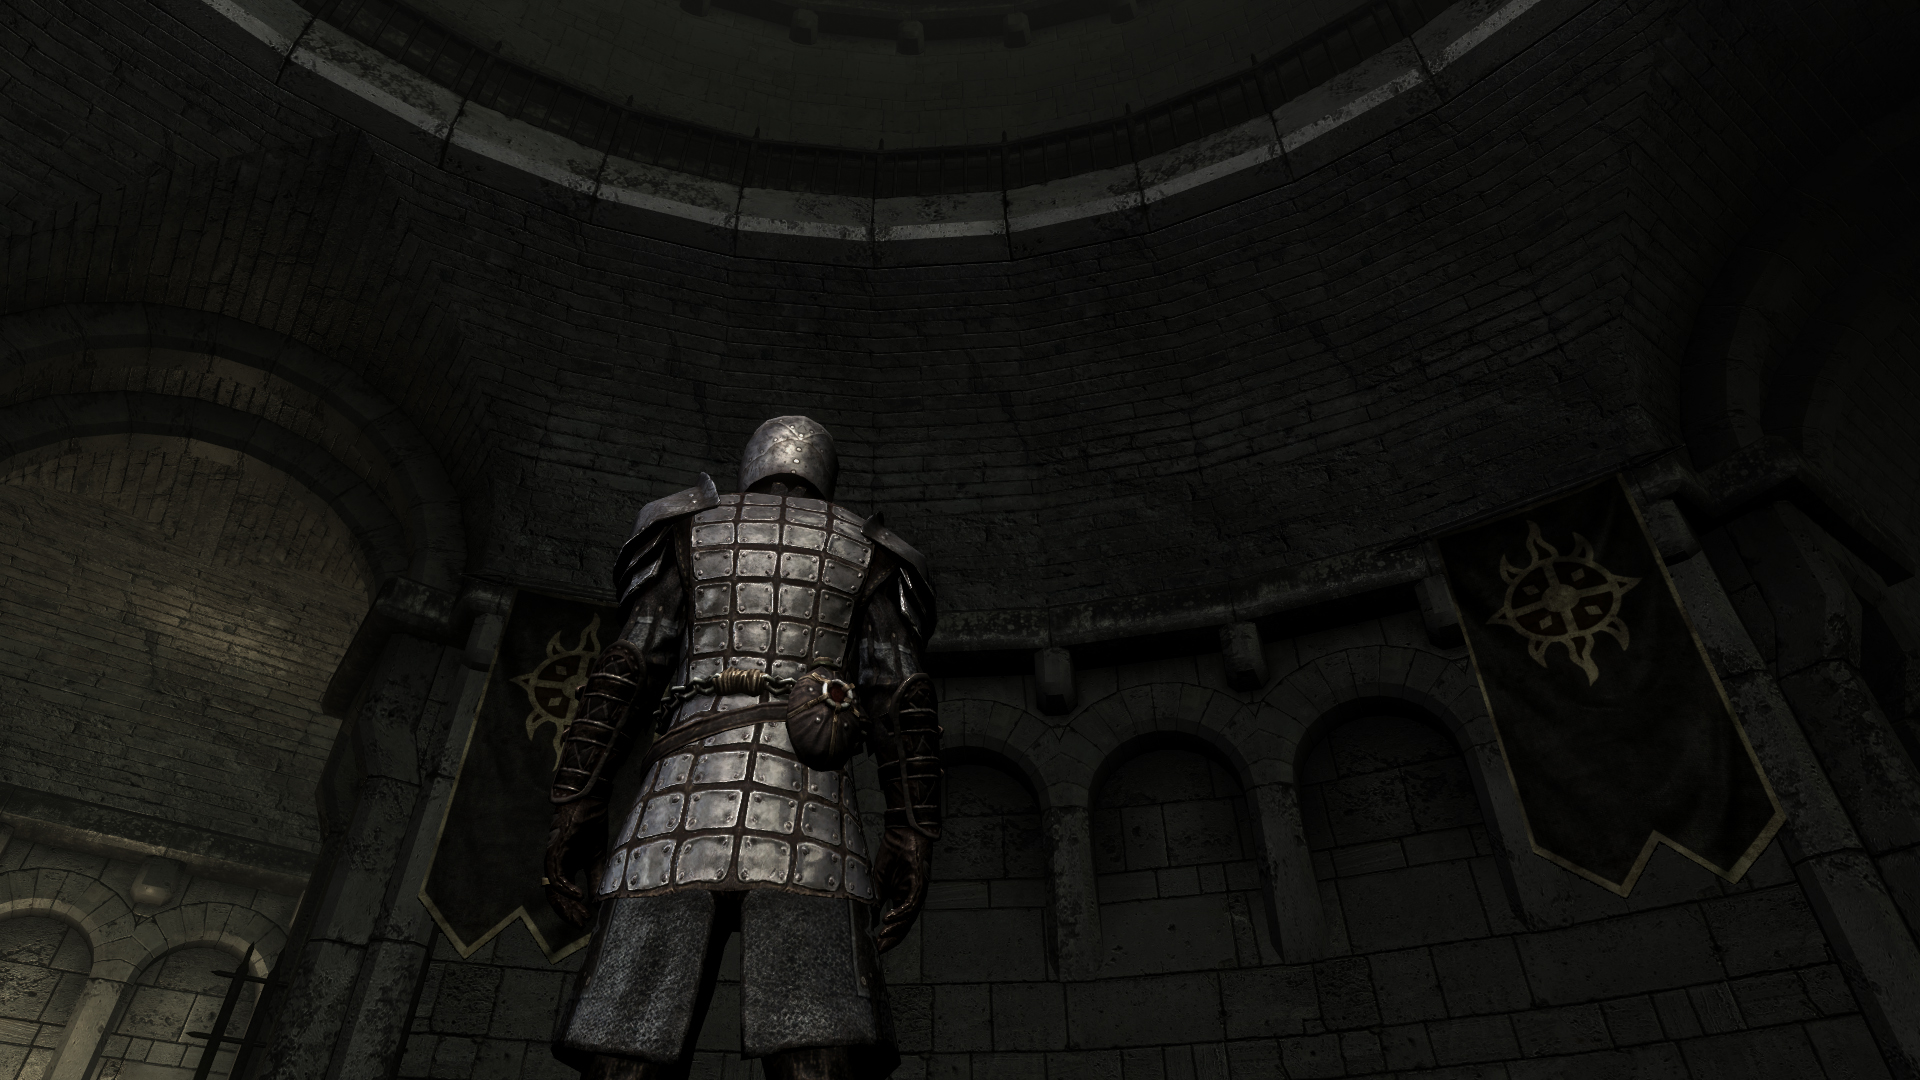 dawnguard reforged at skyrim nexus mods and community dawnguard reforged at skyrim nexus mods and community 608